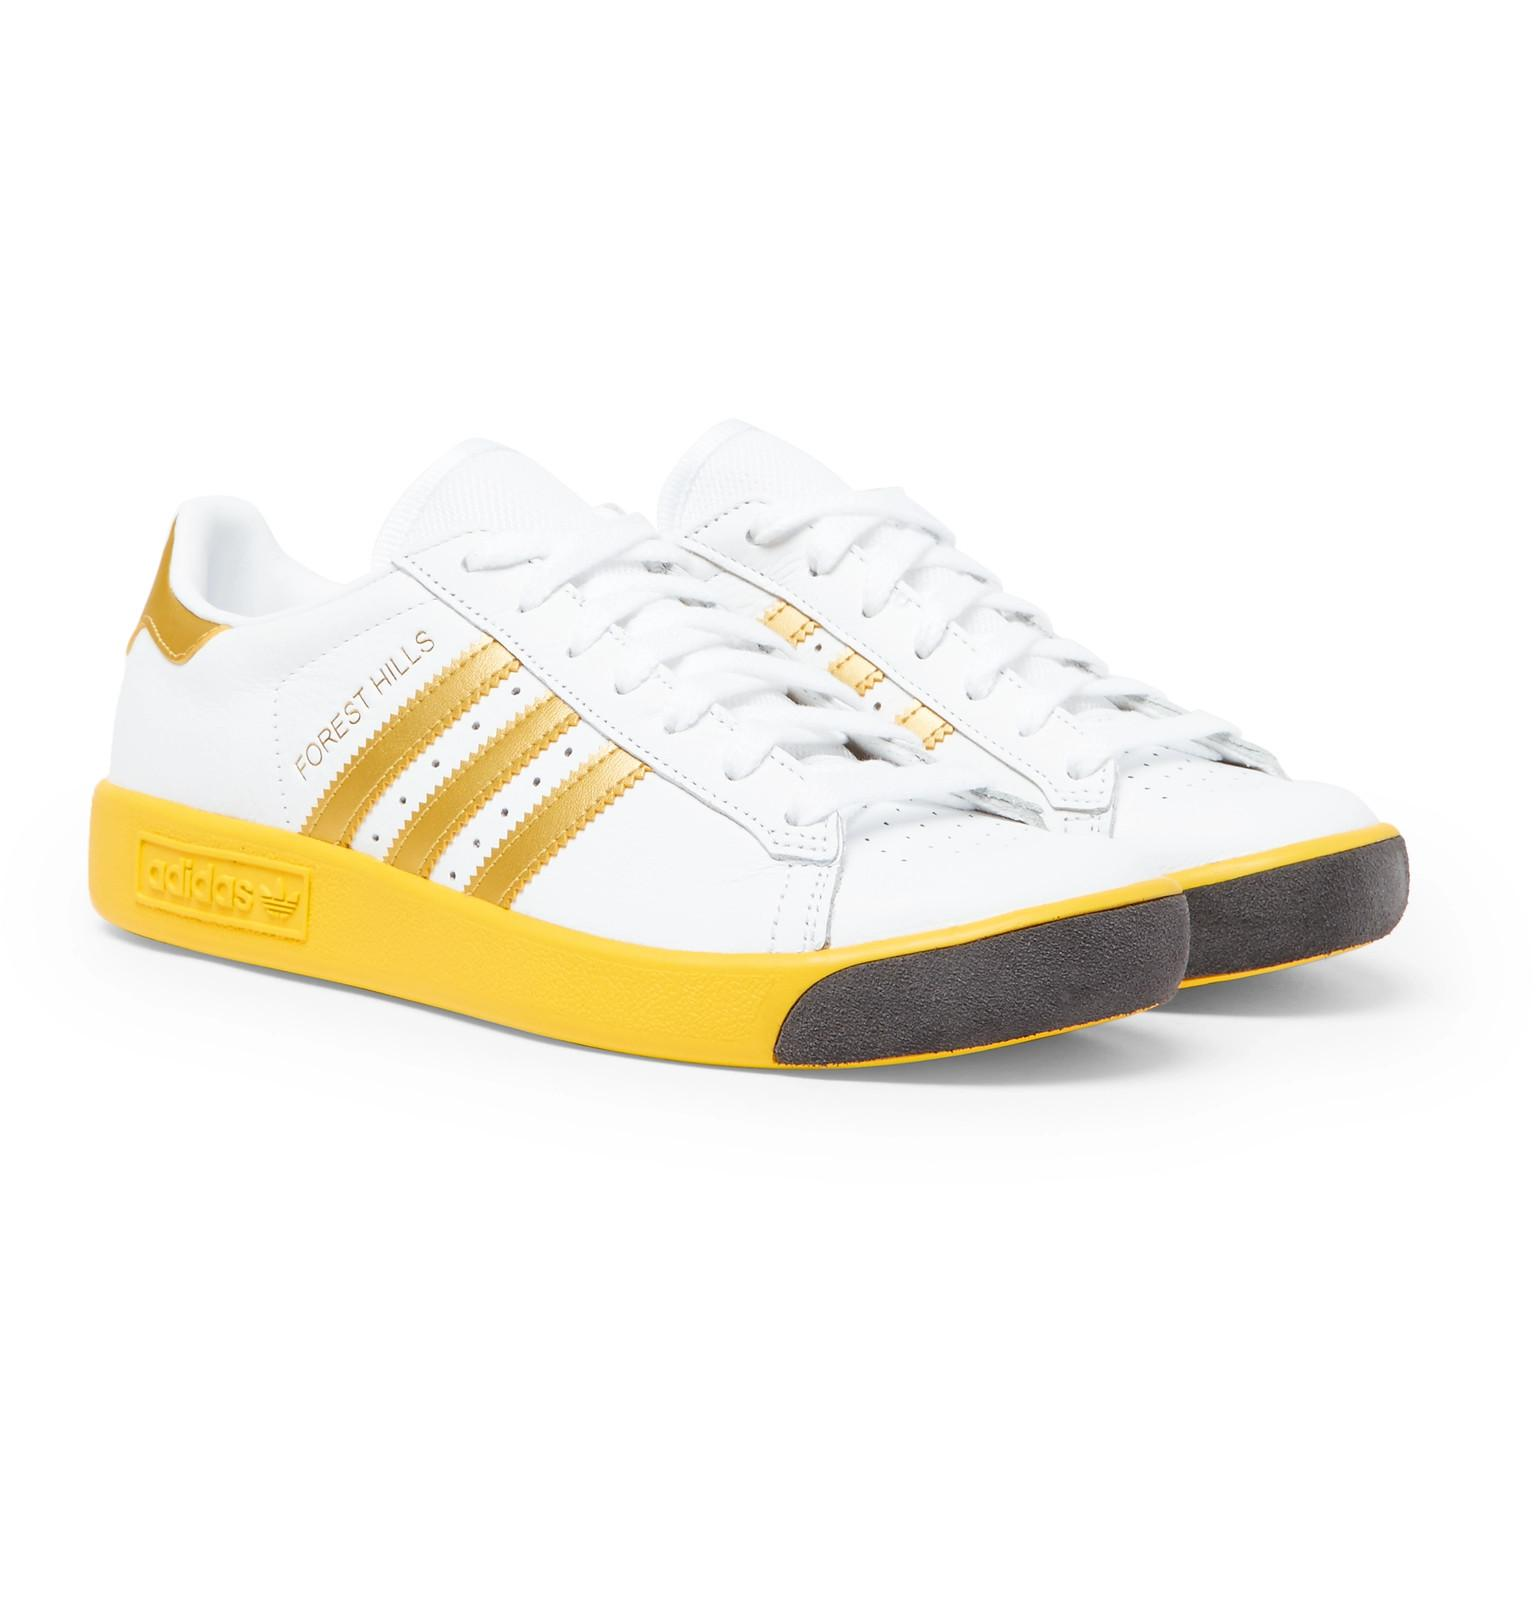 Forest Hills Full-grain Leather And Mesh Sneakers adidas Originals vlizE